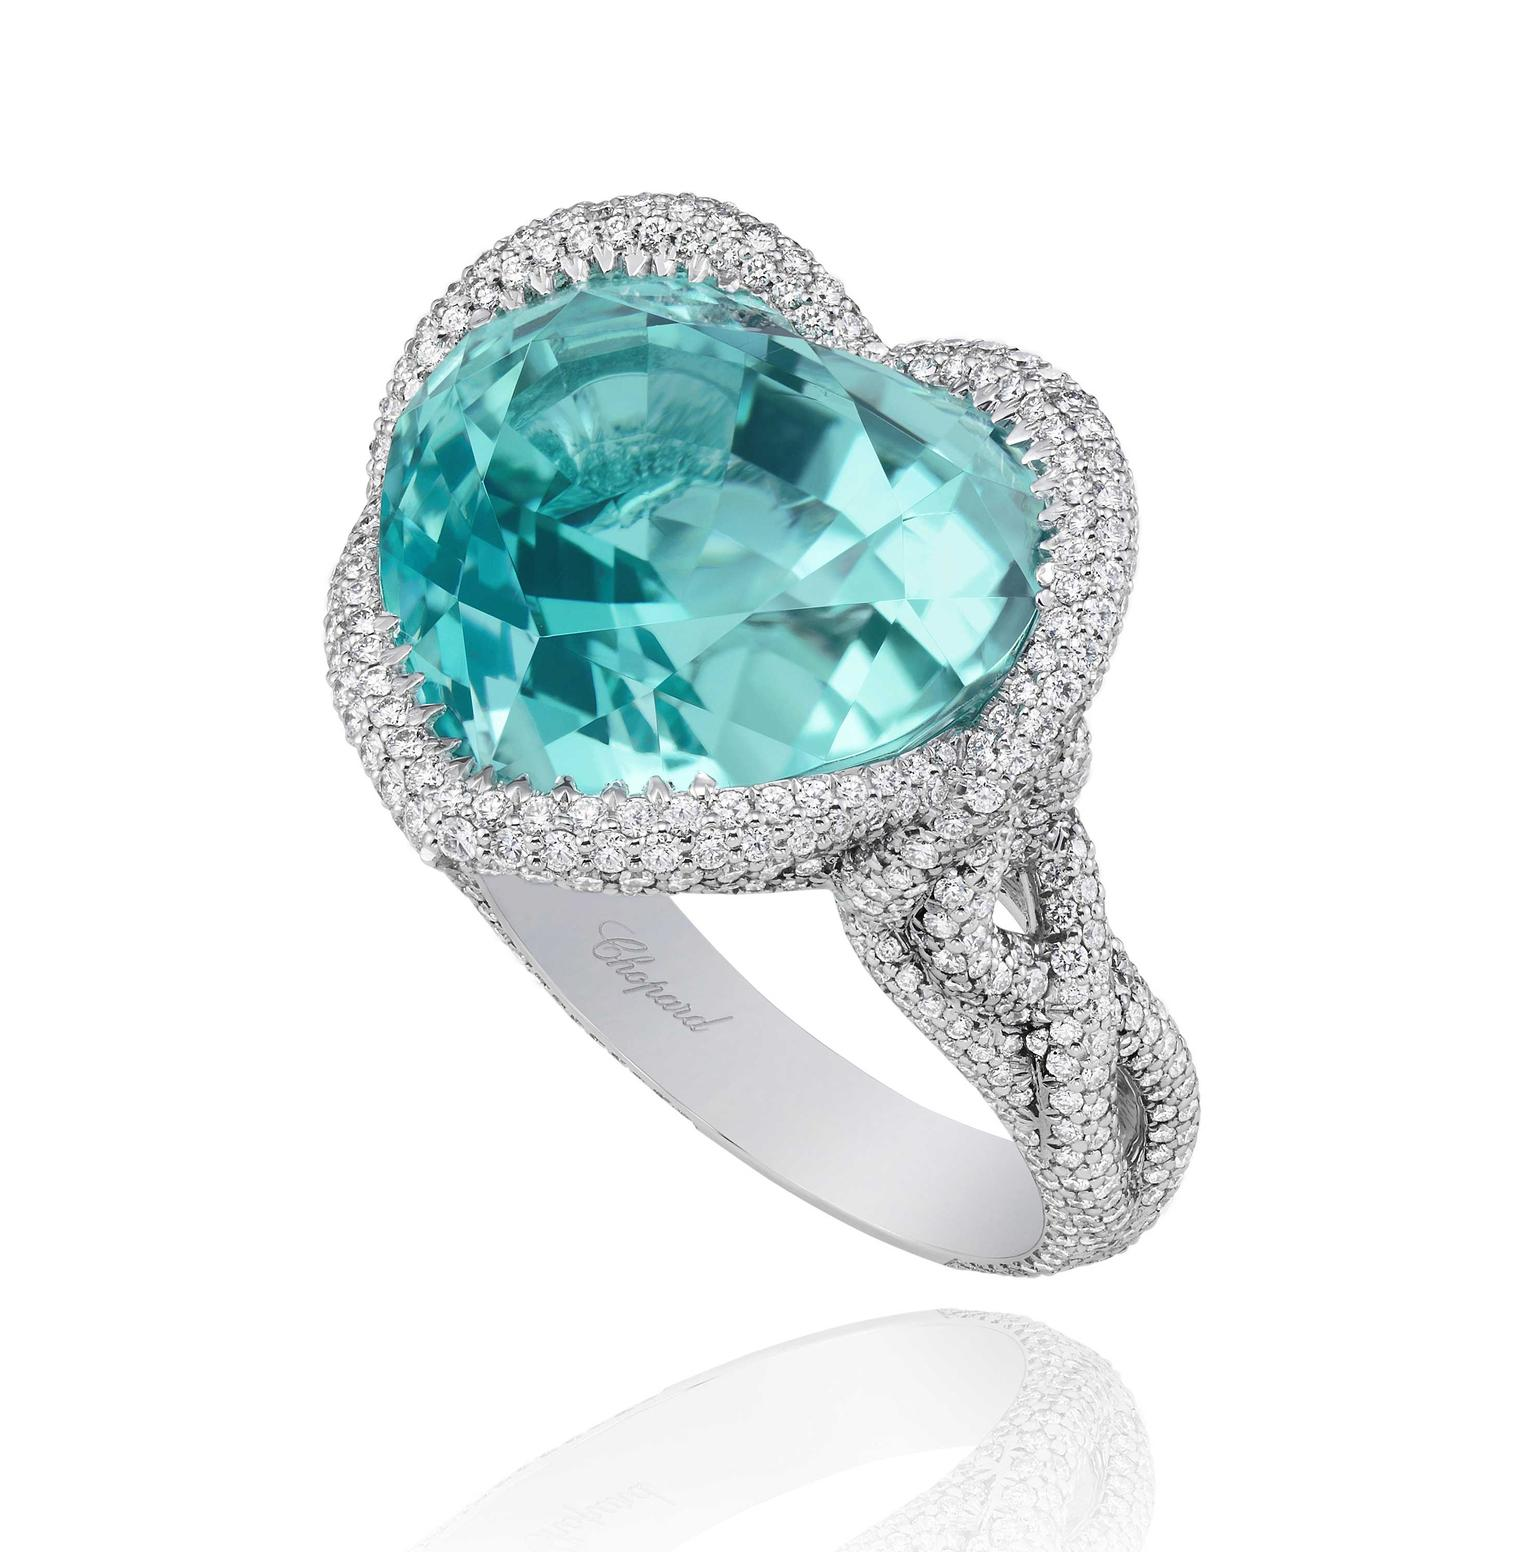 A bright, attention-seeking heart-shaped Paraiba tourmaline is the centrepiece of this ring from Chopard's 2013 Red Carpet collection.